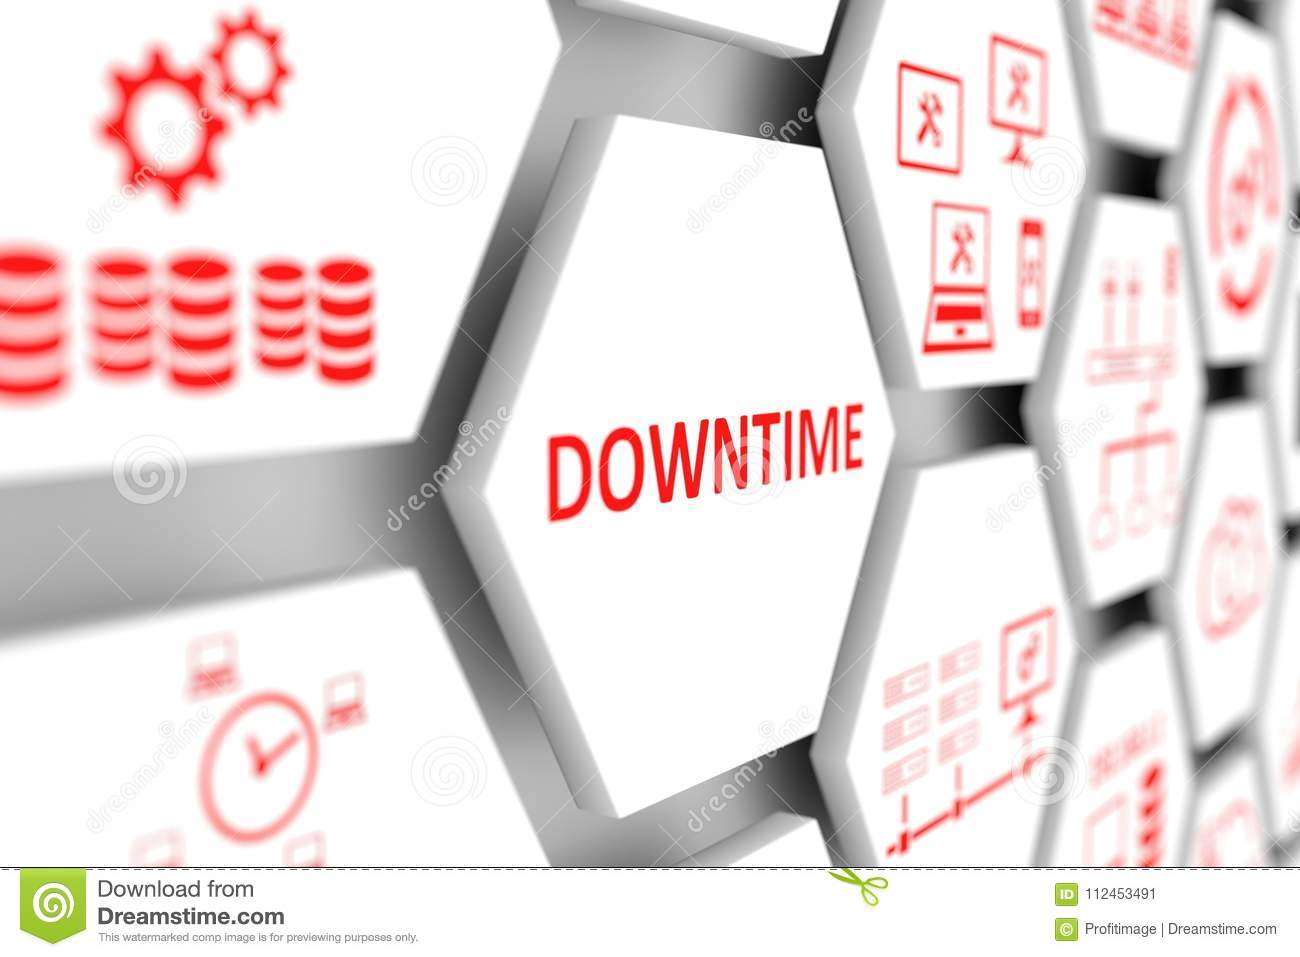 Downtime Stock Illustrations – 333 Downtime Stock ...